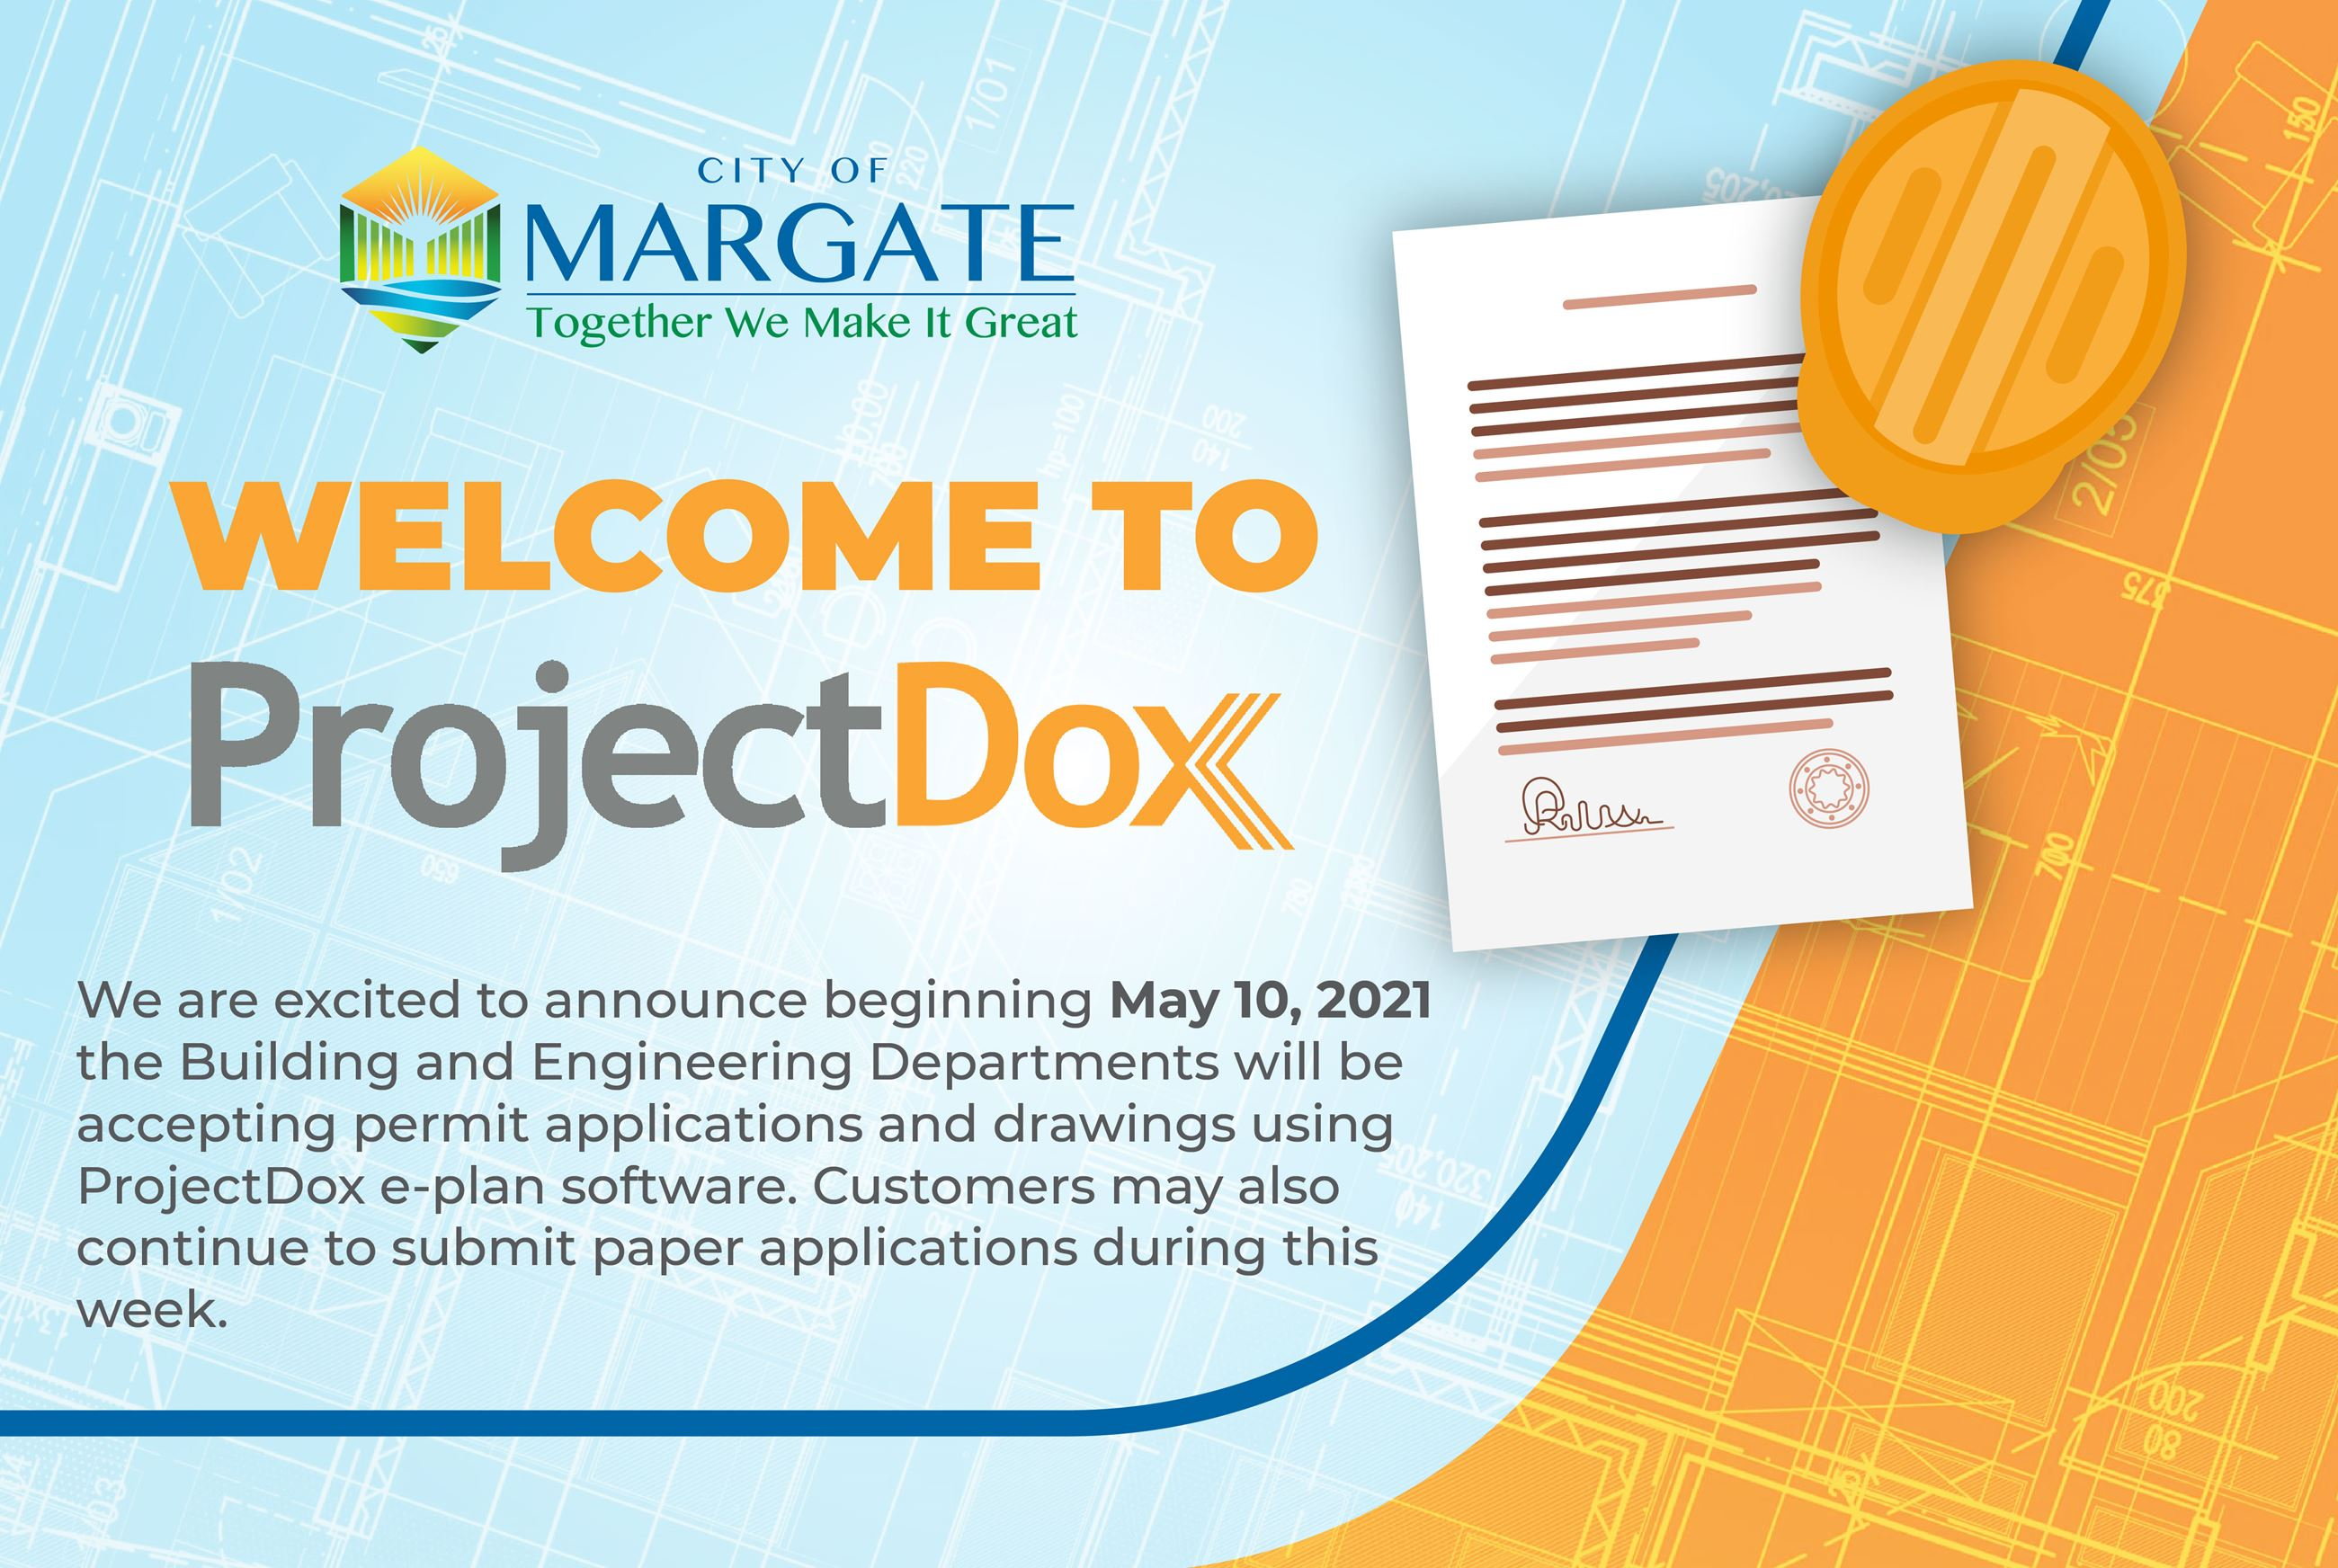 Welcome to ProjectBox_CityNews